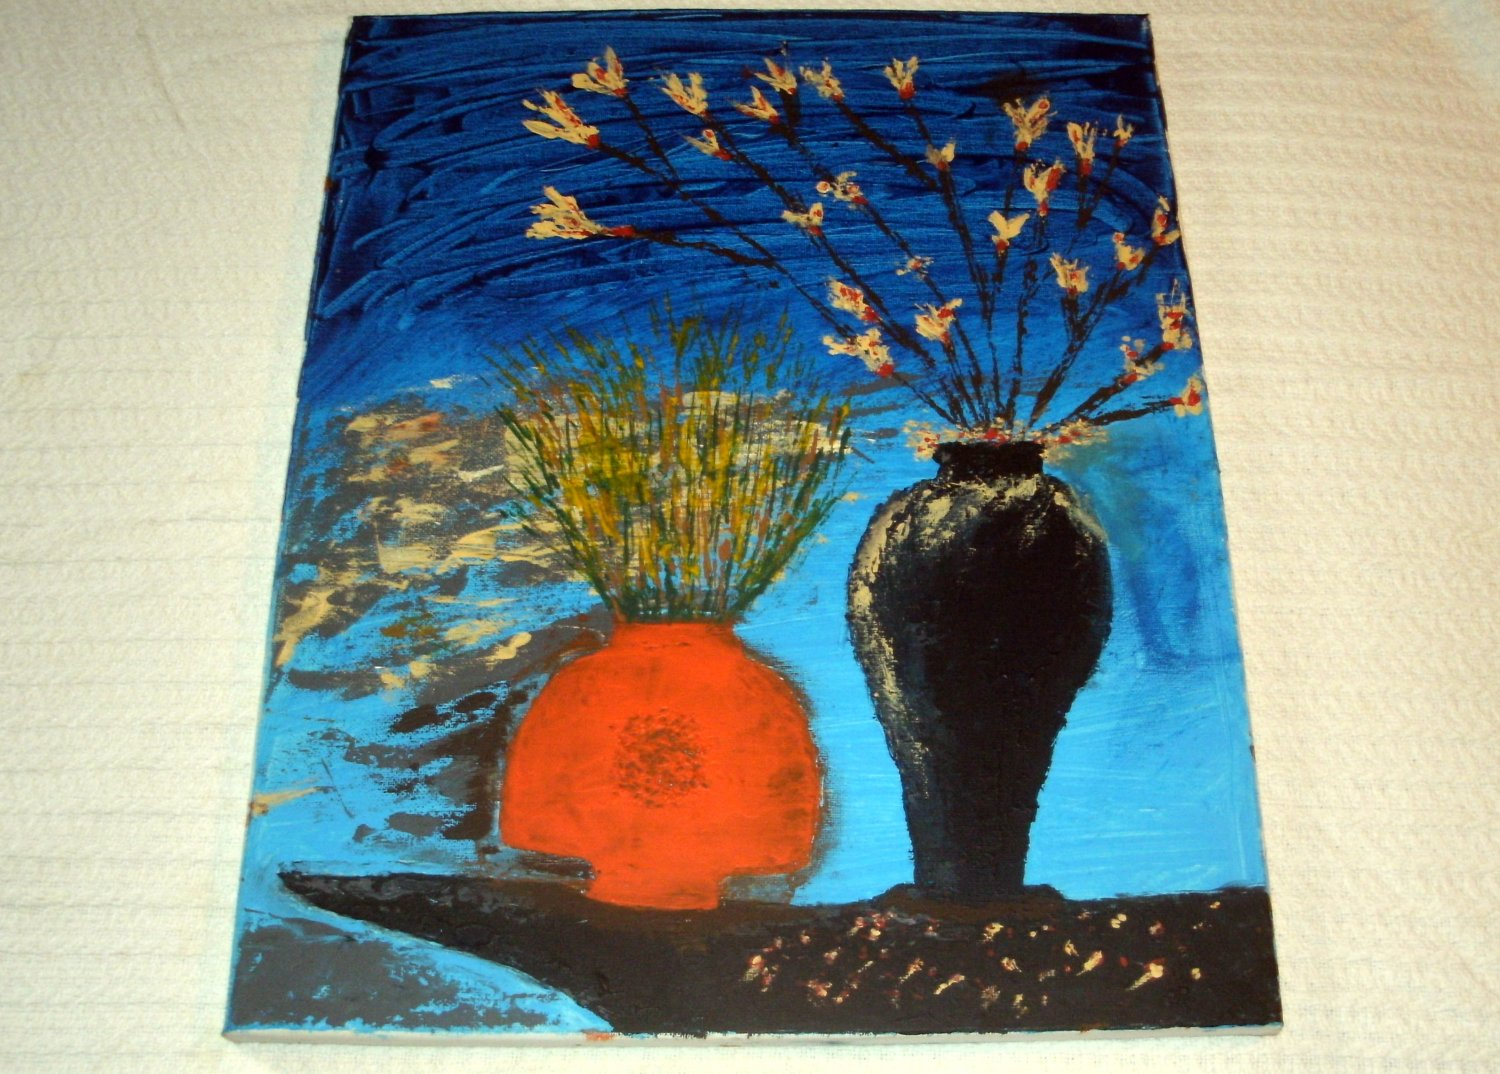 Floral in a Black Vase & Orange Bowl/Acrylic/Impressionism/New/